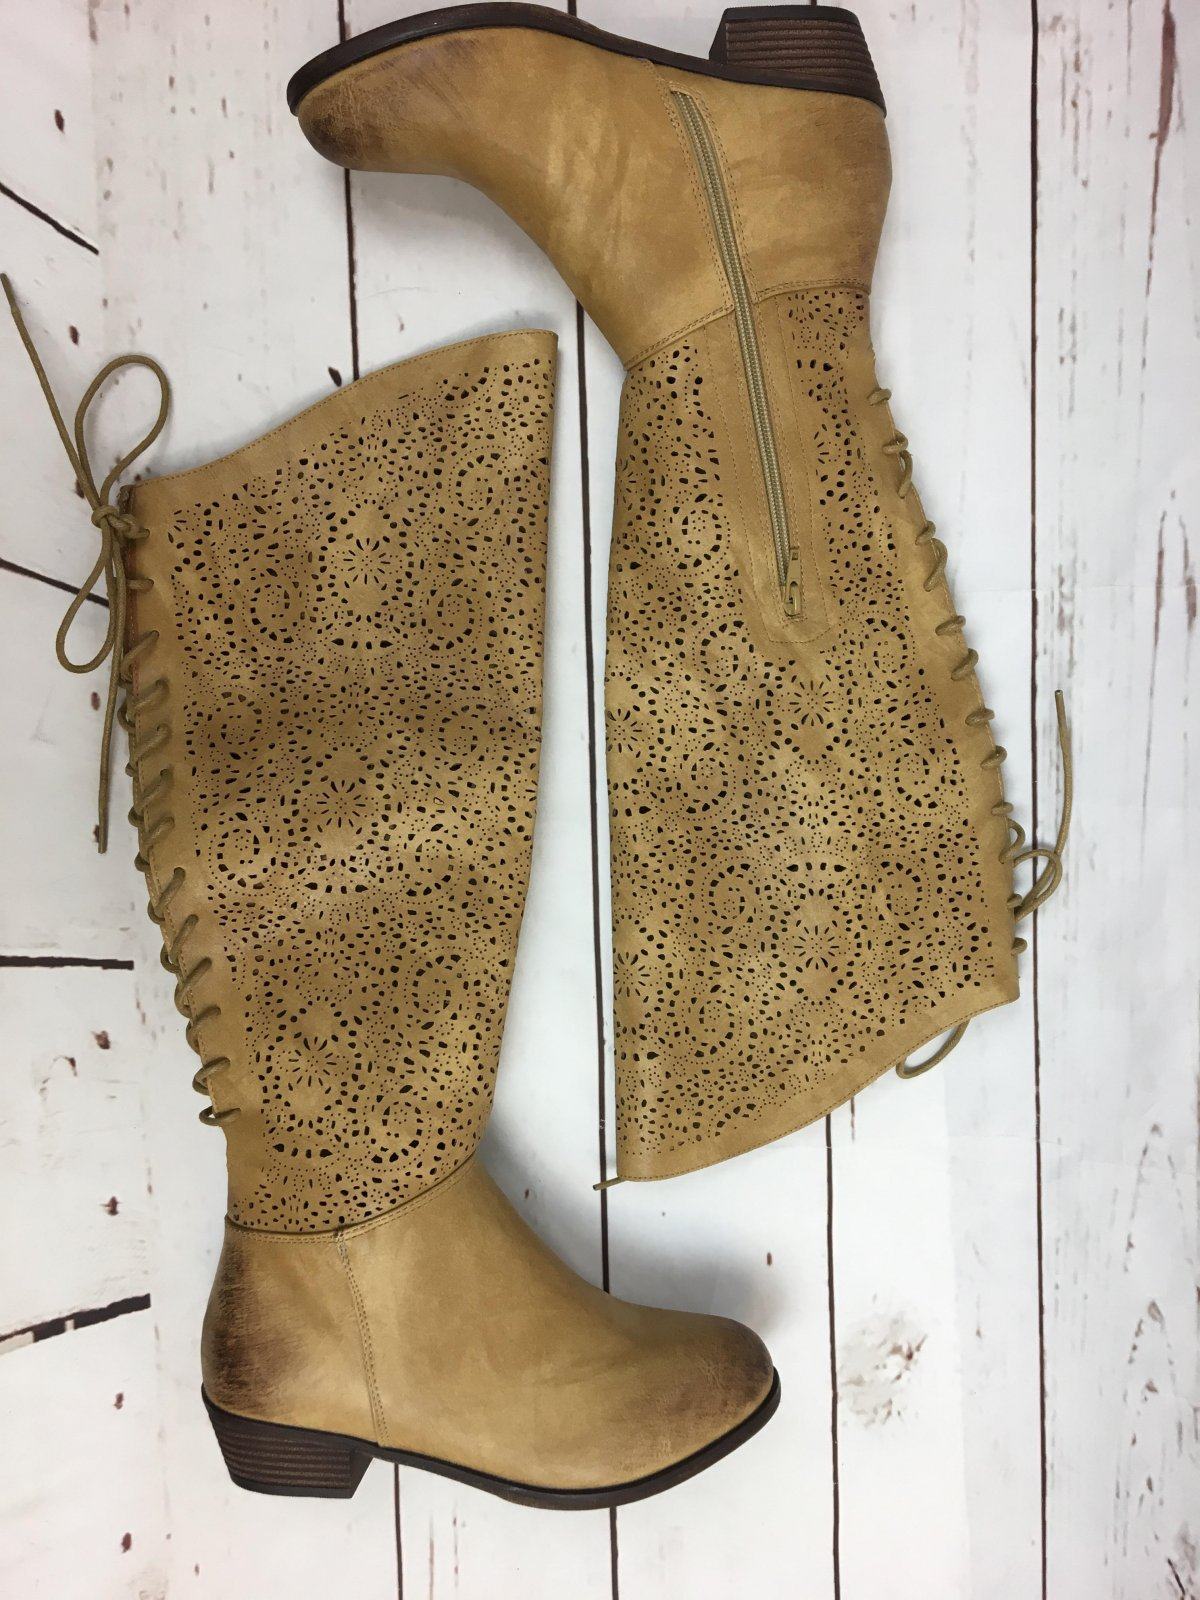 Laser cut upper boot